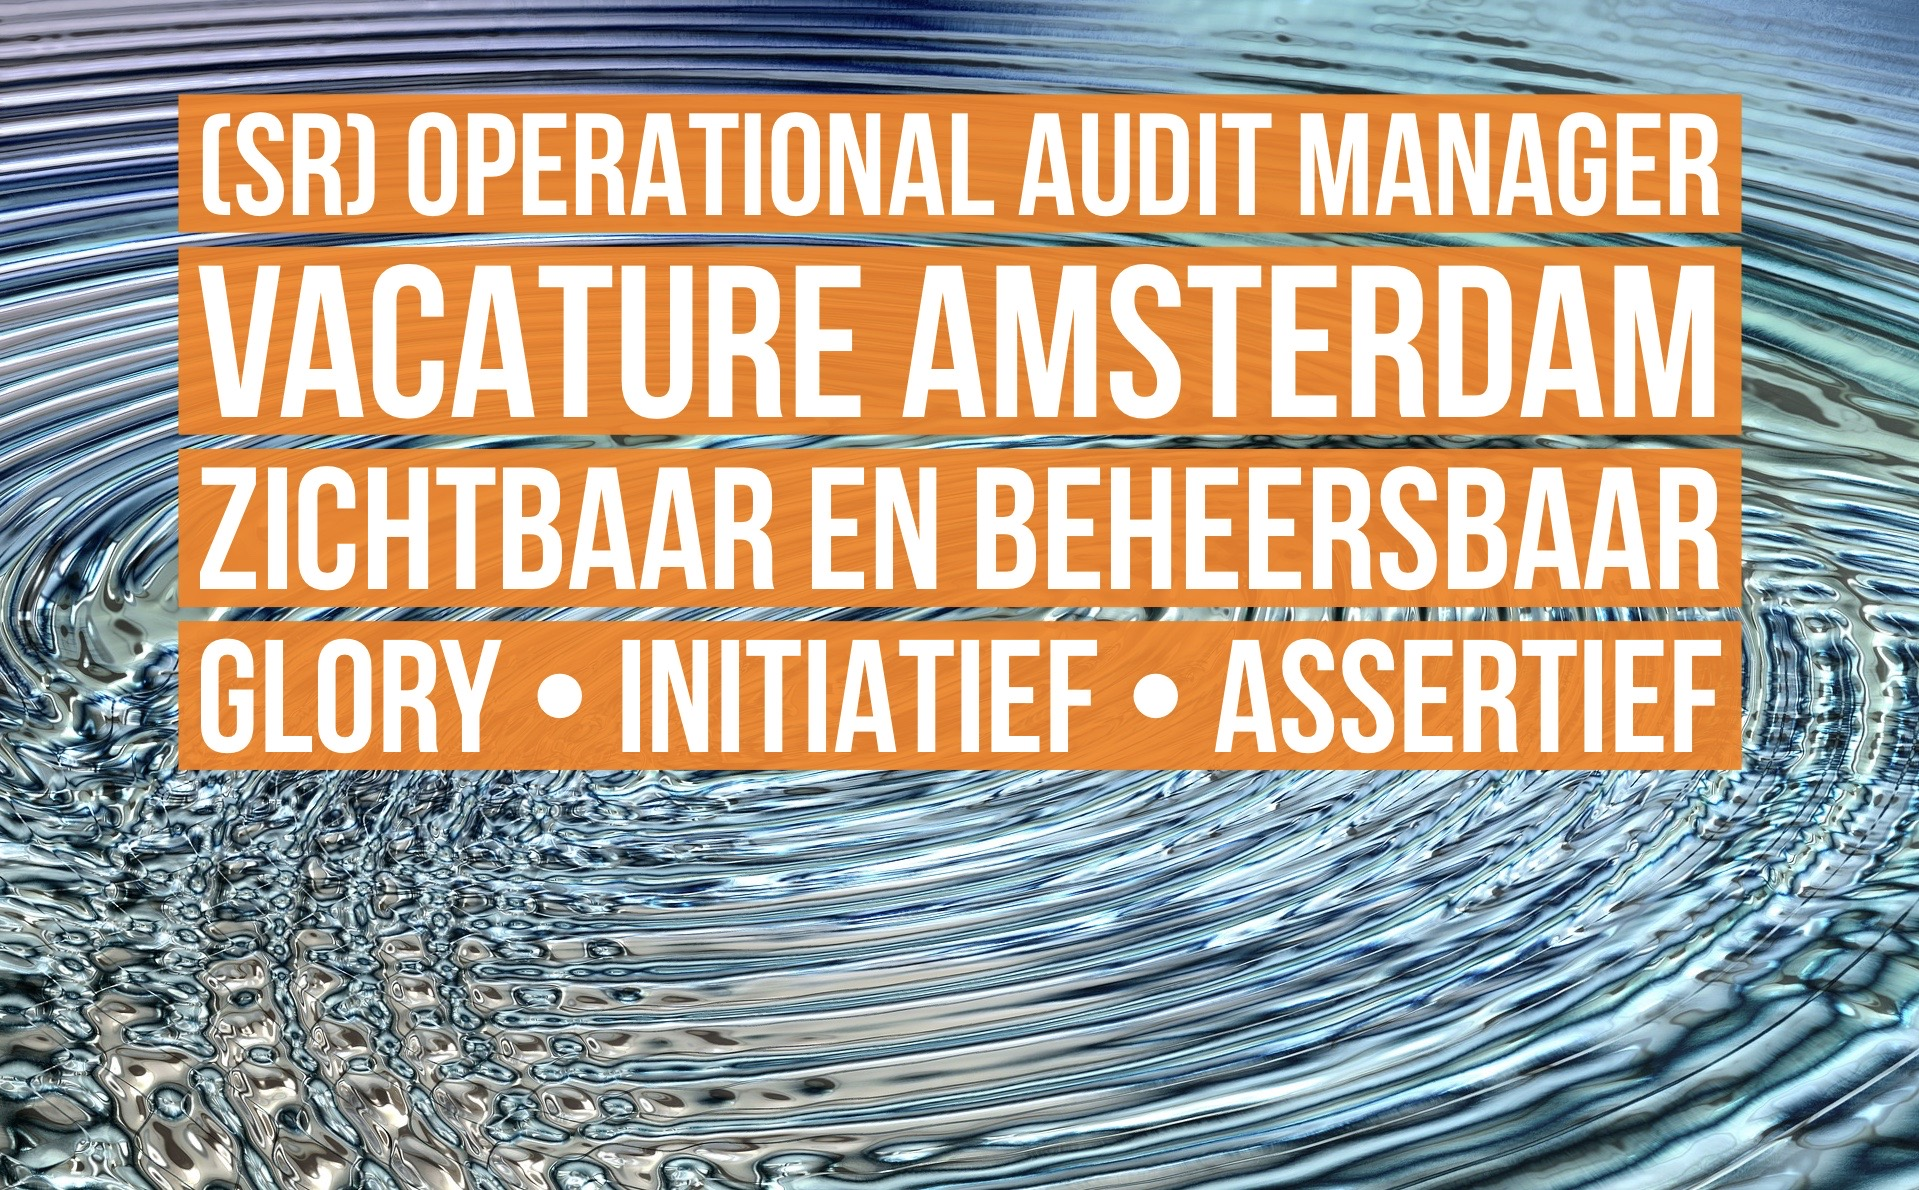 Senior Operational Audit Manager vacature Amsterdam